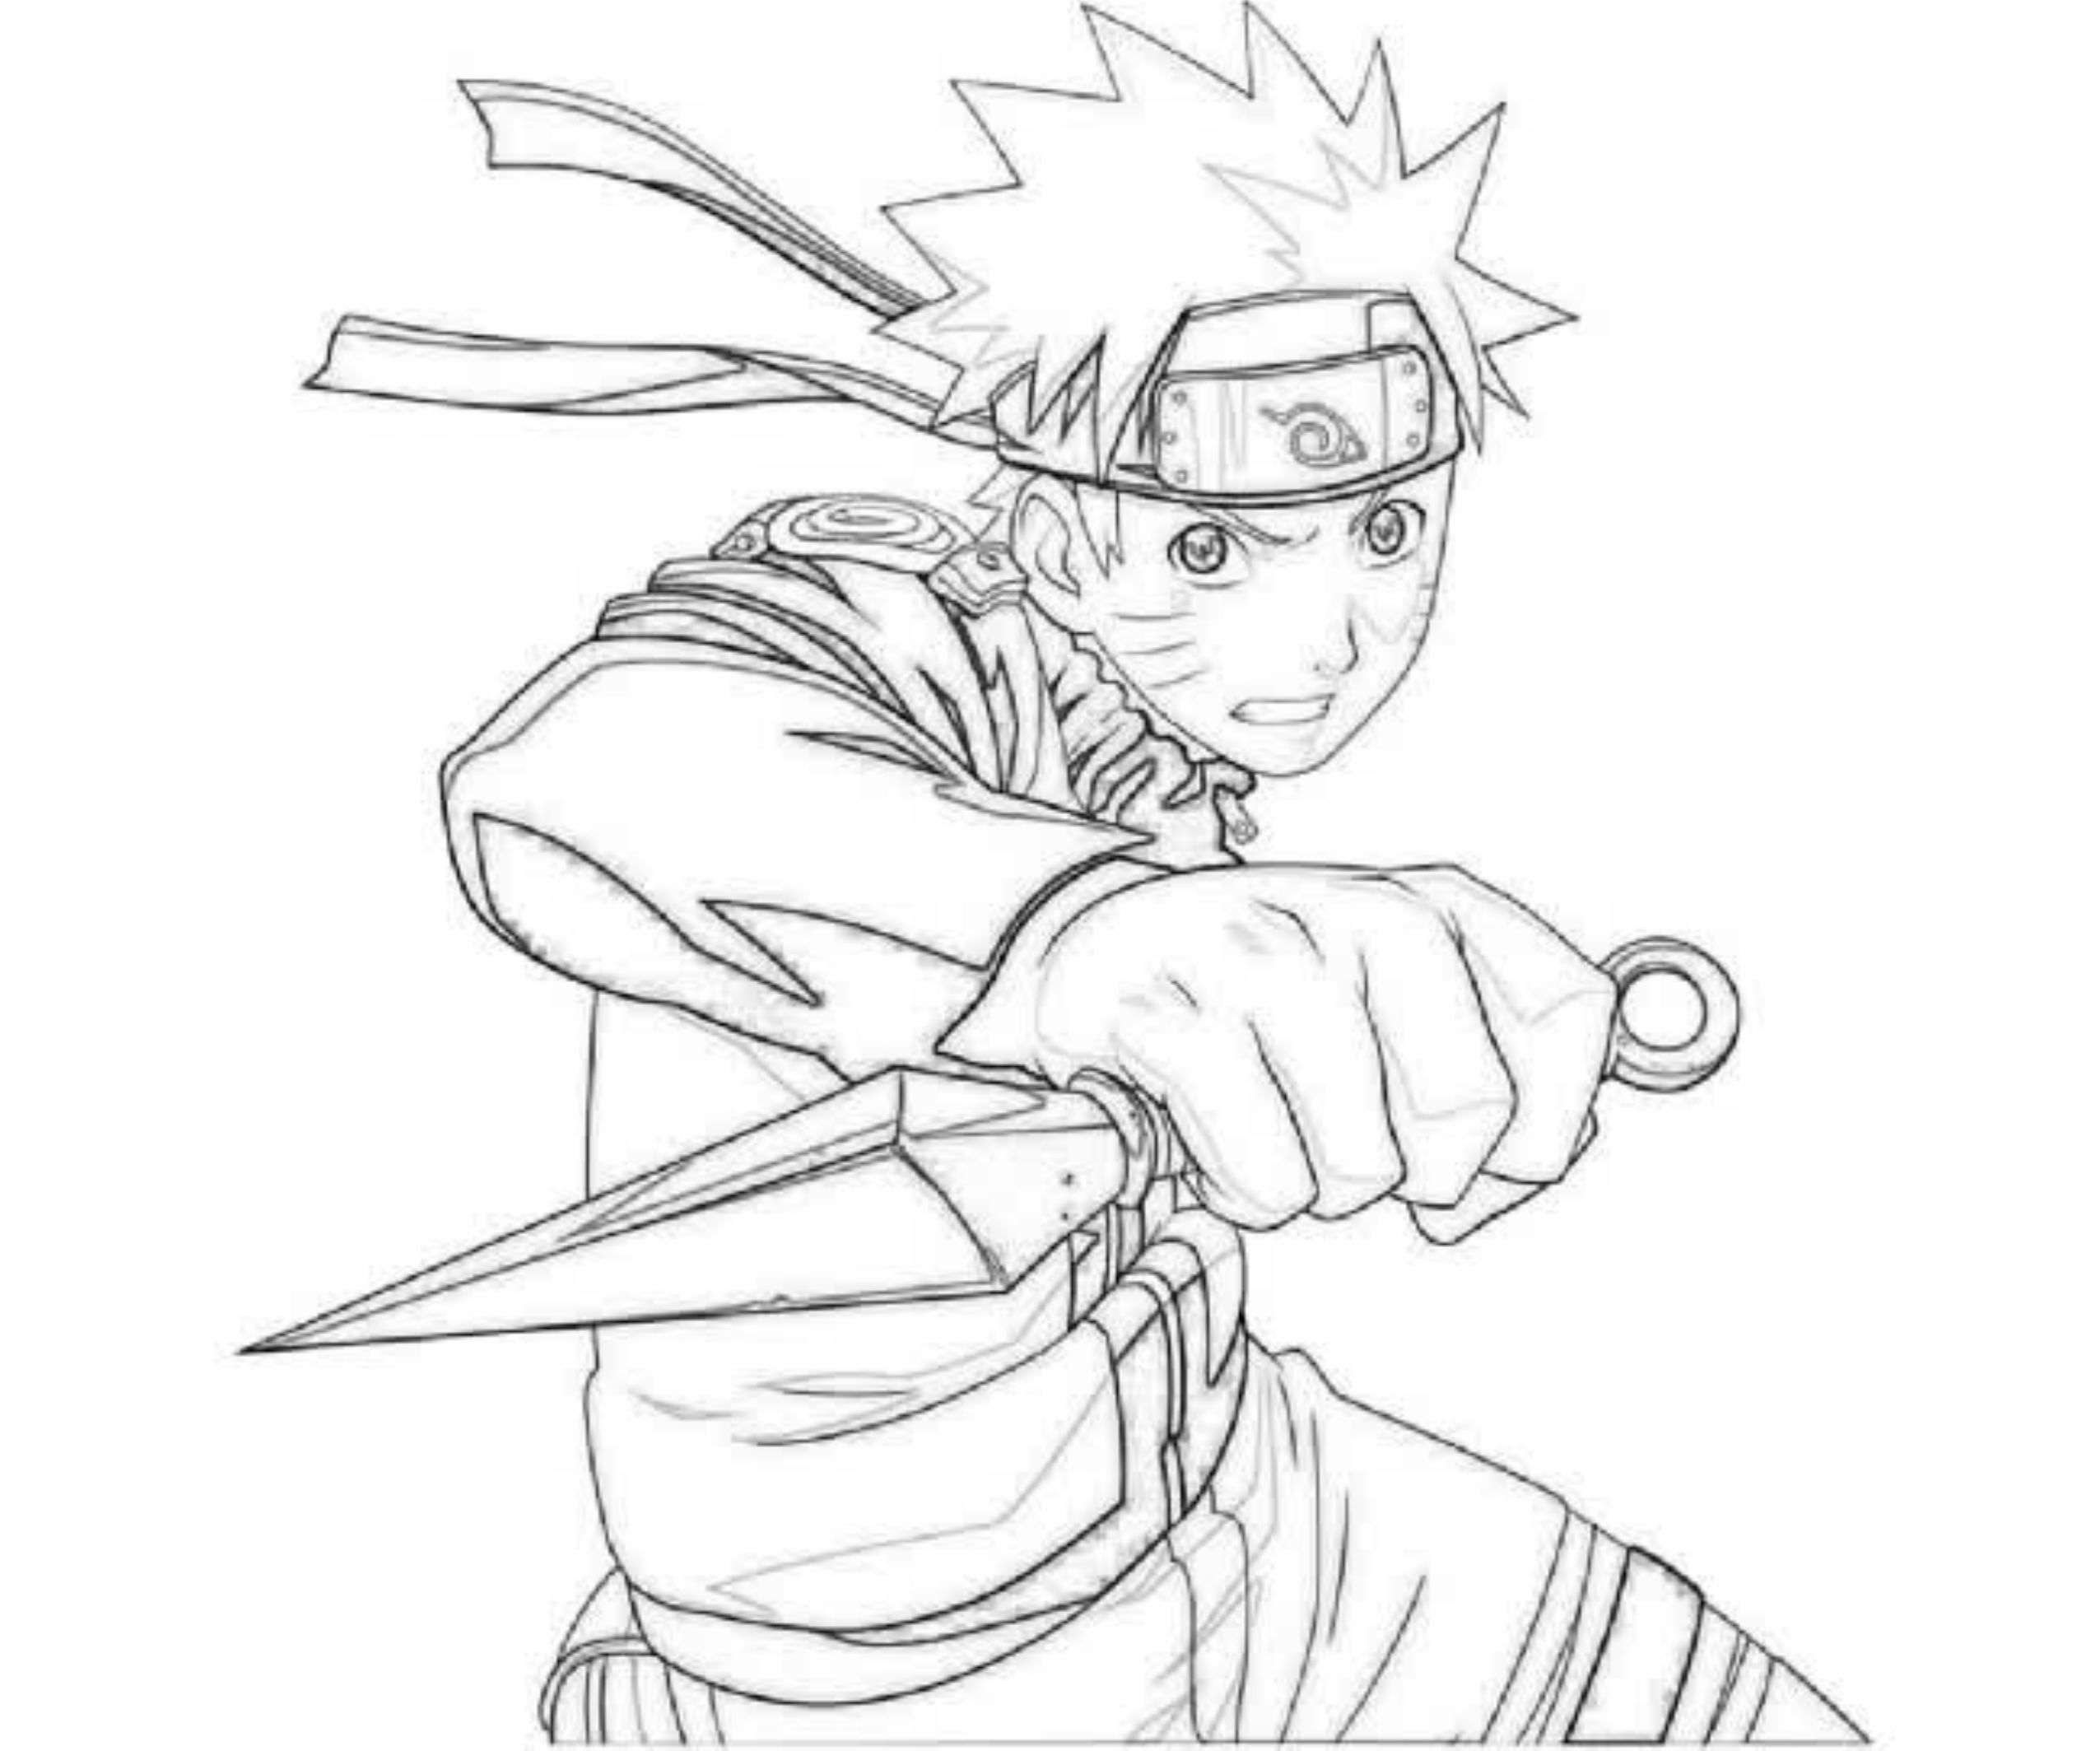 The Best Free Naruto Coloring Page Images Download From 358 Free Coloring Pages Of Naruto At Getdrawings